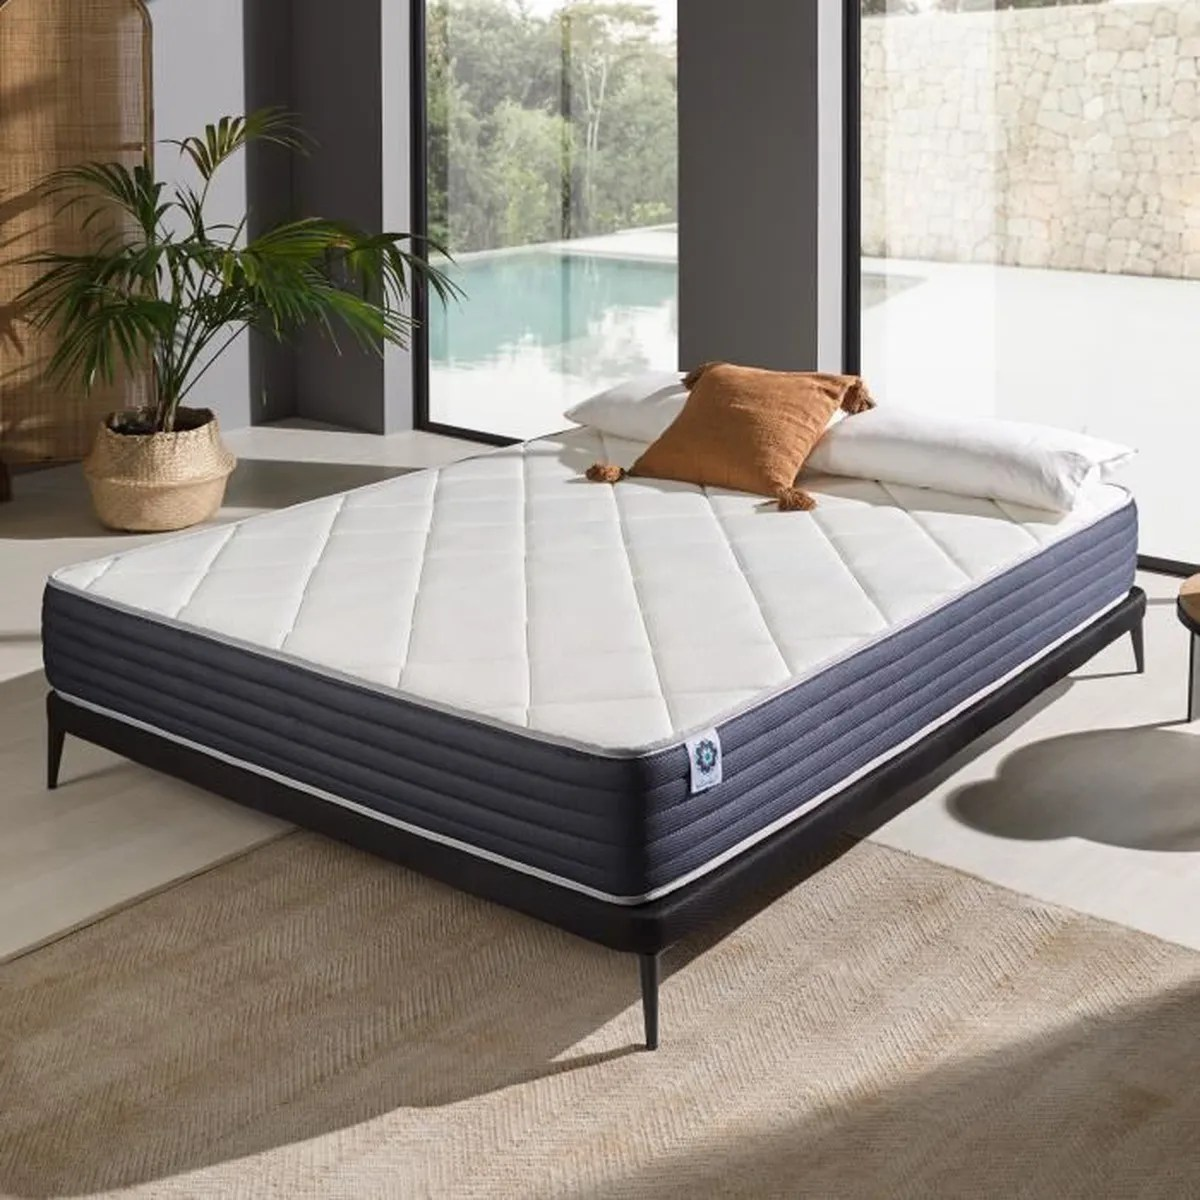 Matelas 160x200 Mousse Matelas 160x200 Cm En Mousse Blue Latex 43 Confortable à 7